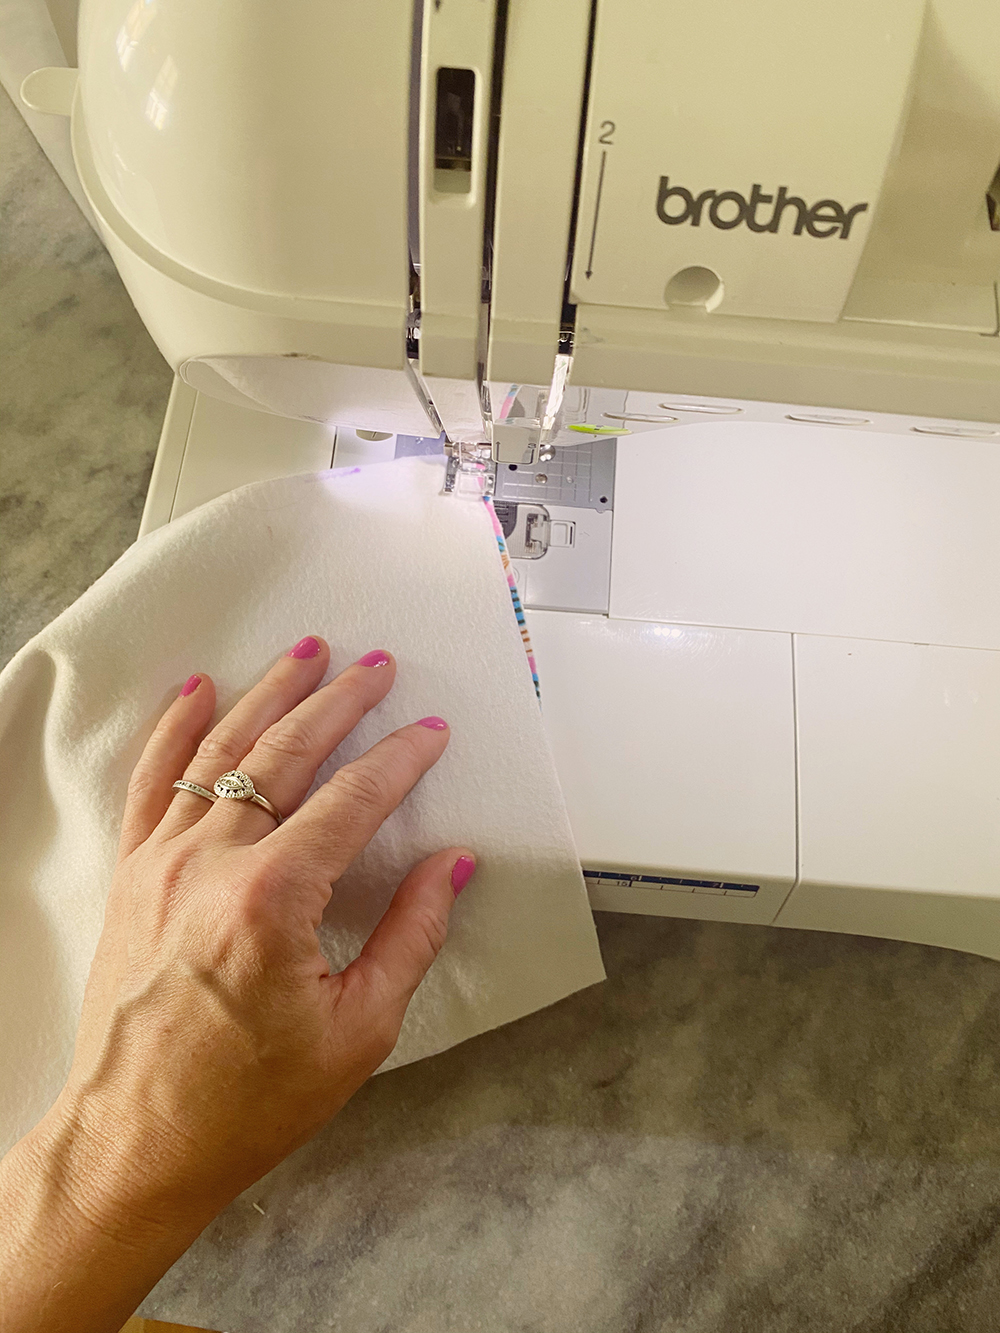 Sewing the fabric strips together with a sewing machine